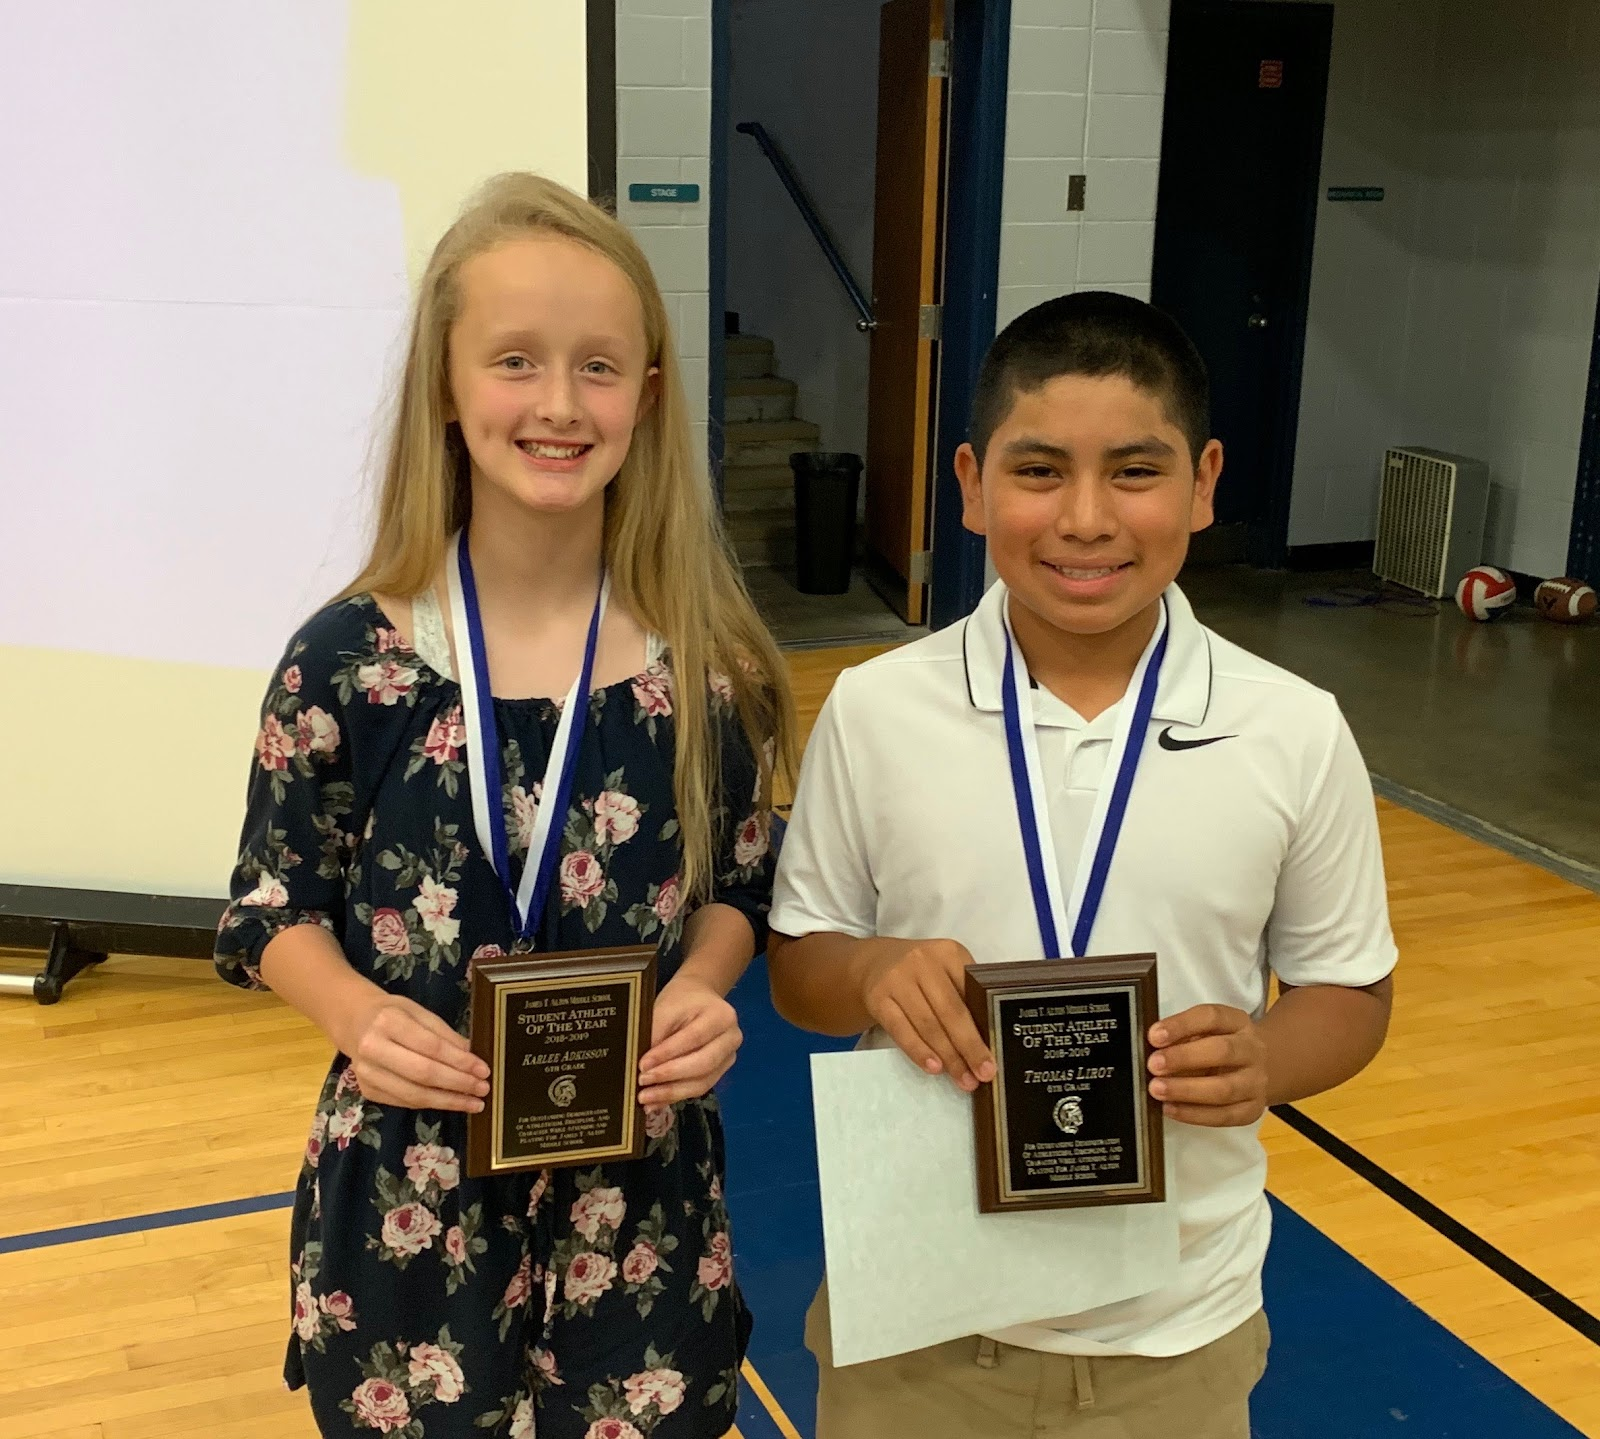 Karlee Adkisson & Thomas Lirot, 6th Grade Student Athletes of the Year